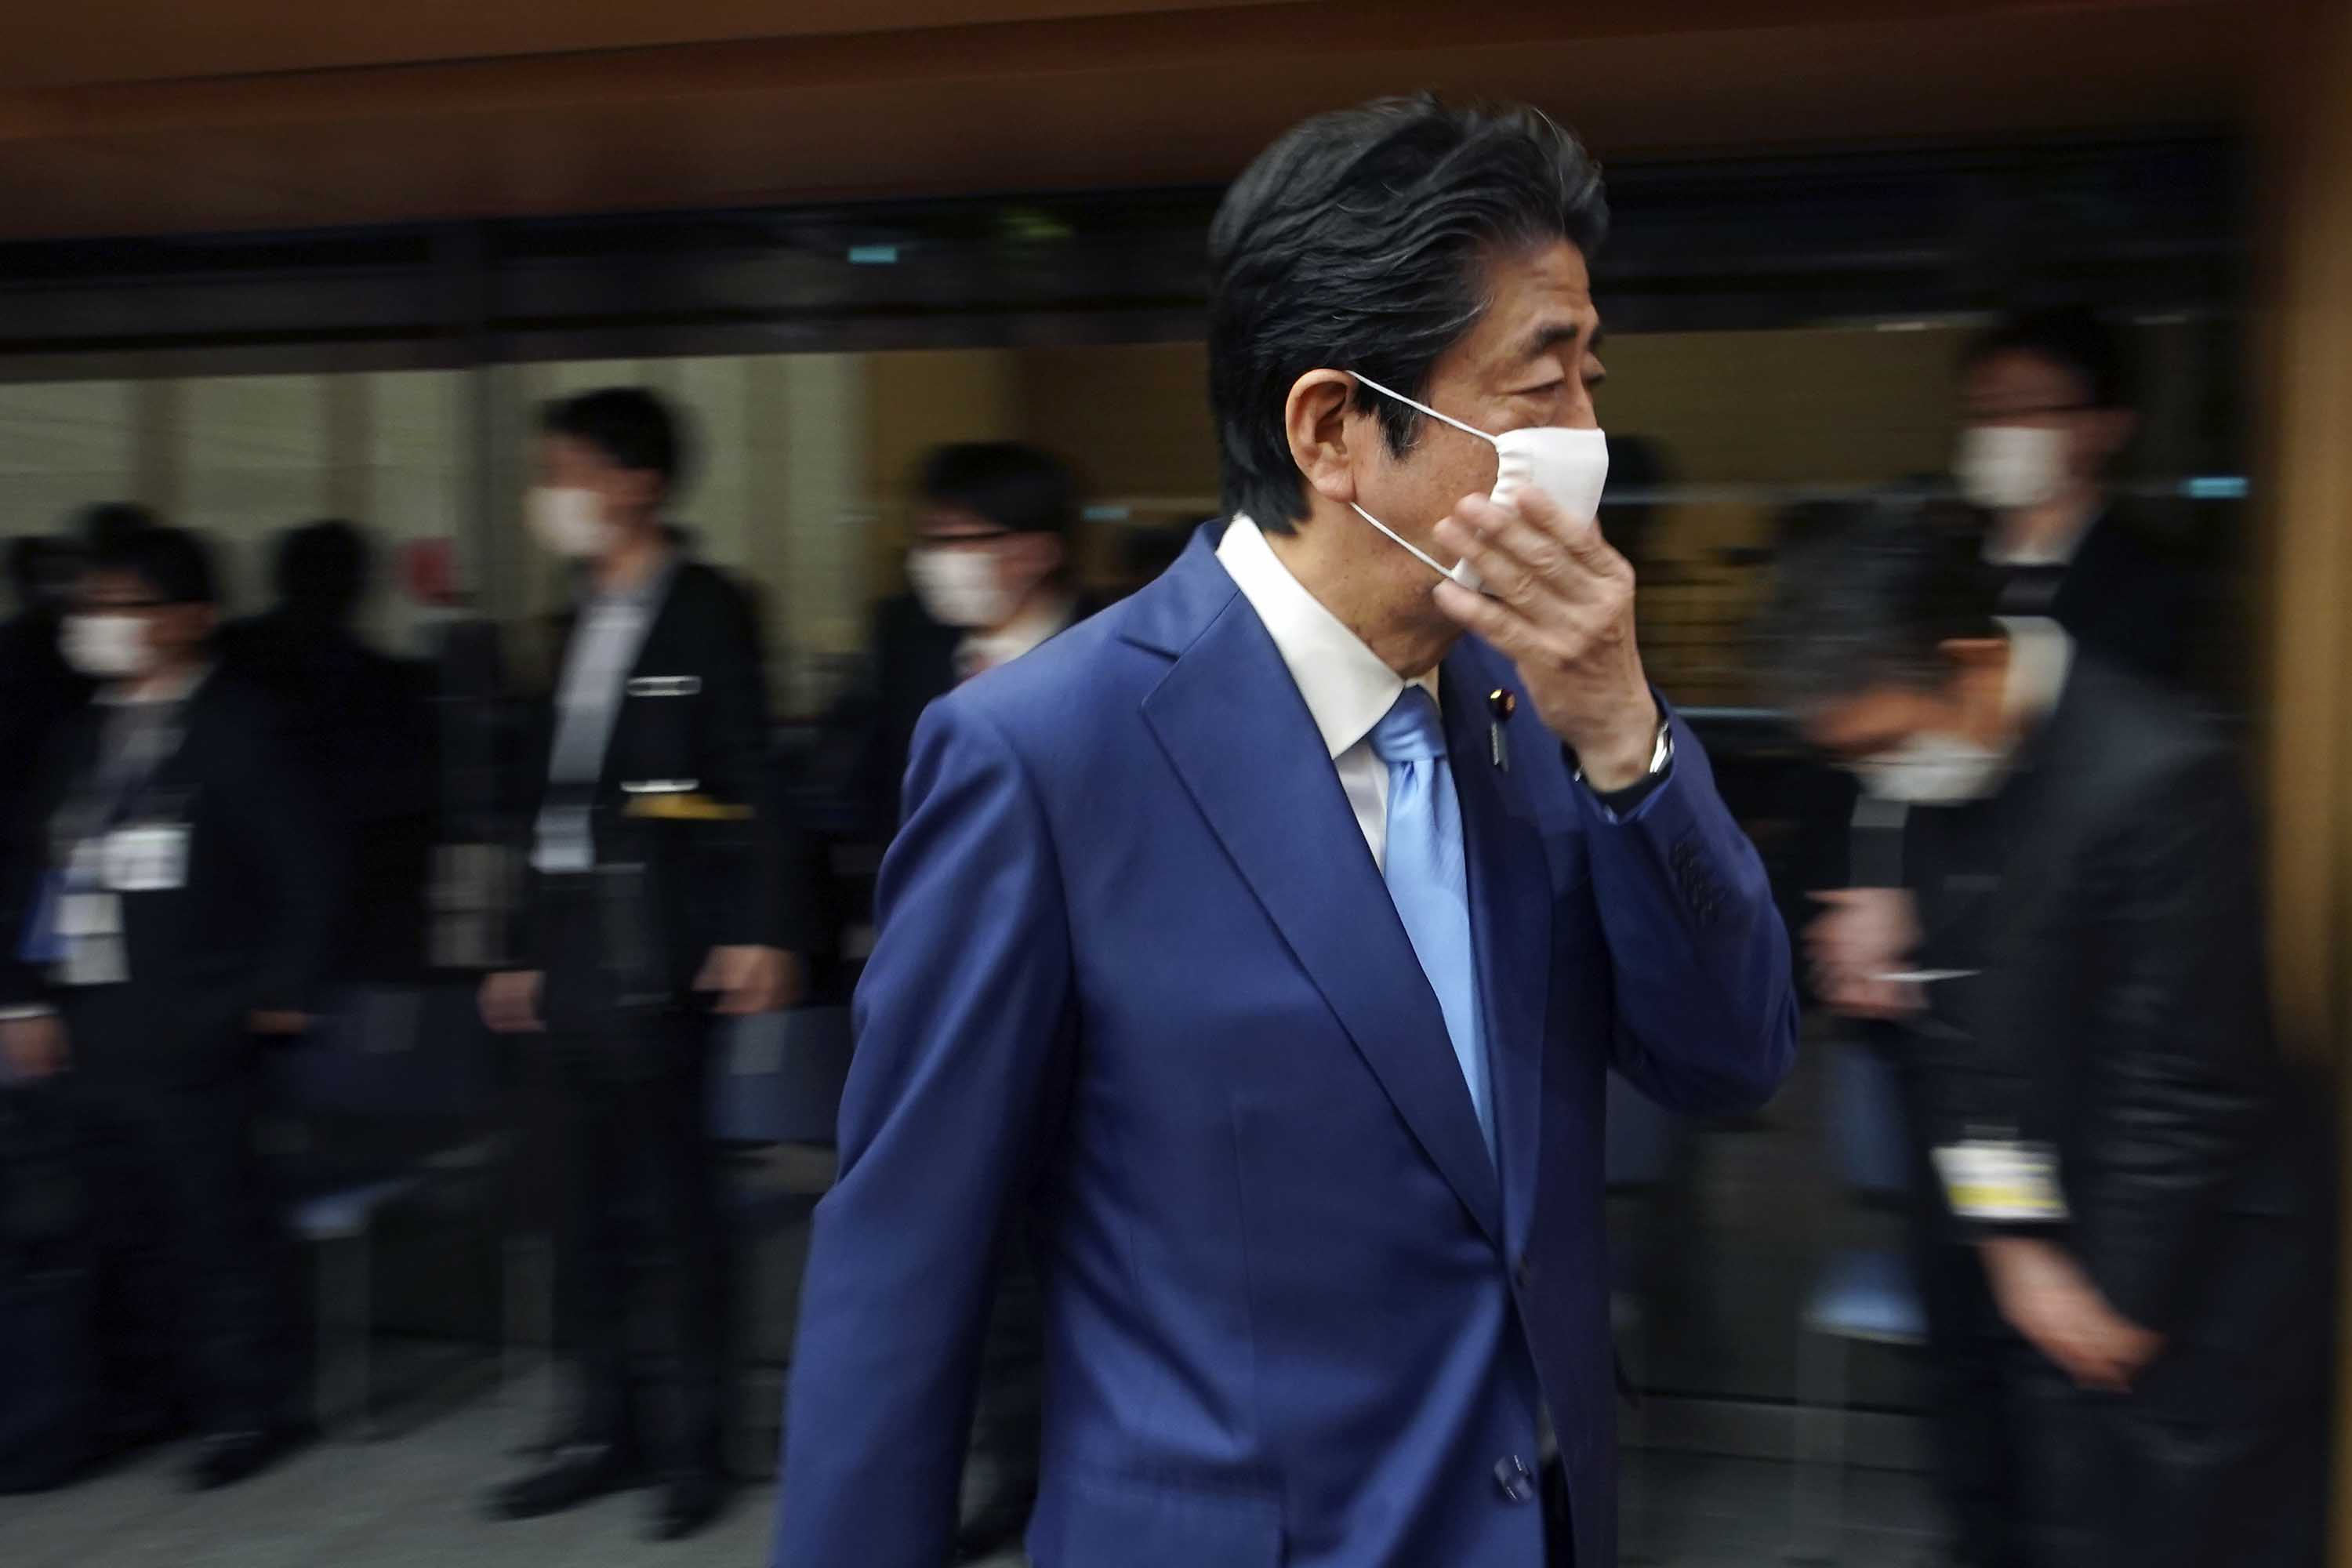 Japanese Prime Minister Shinzo Abe adjusts his face mask as he leaves a press conference in Tokyo on May 4.